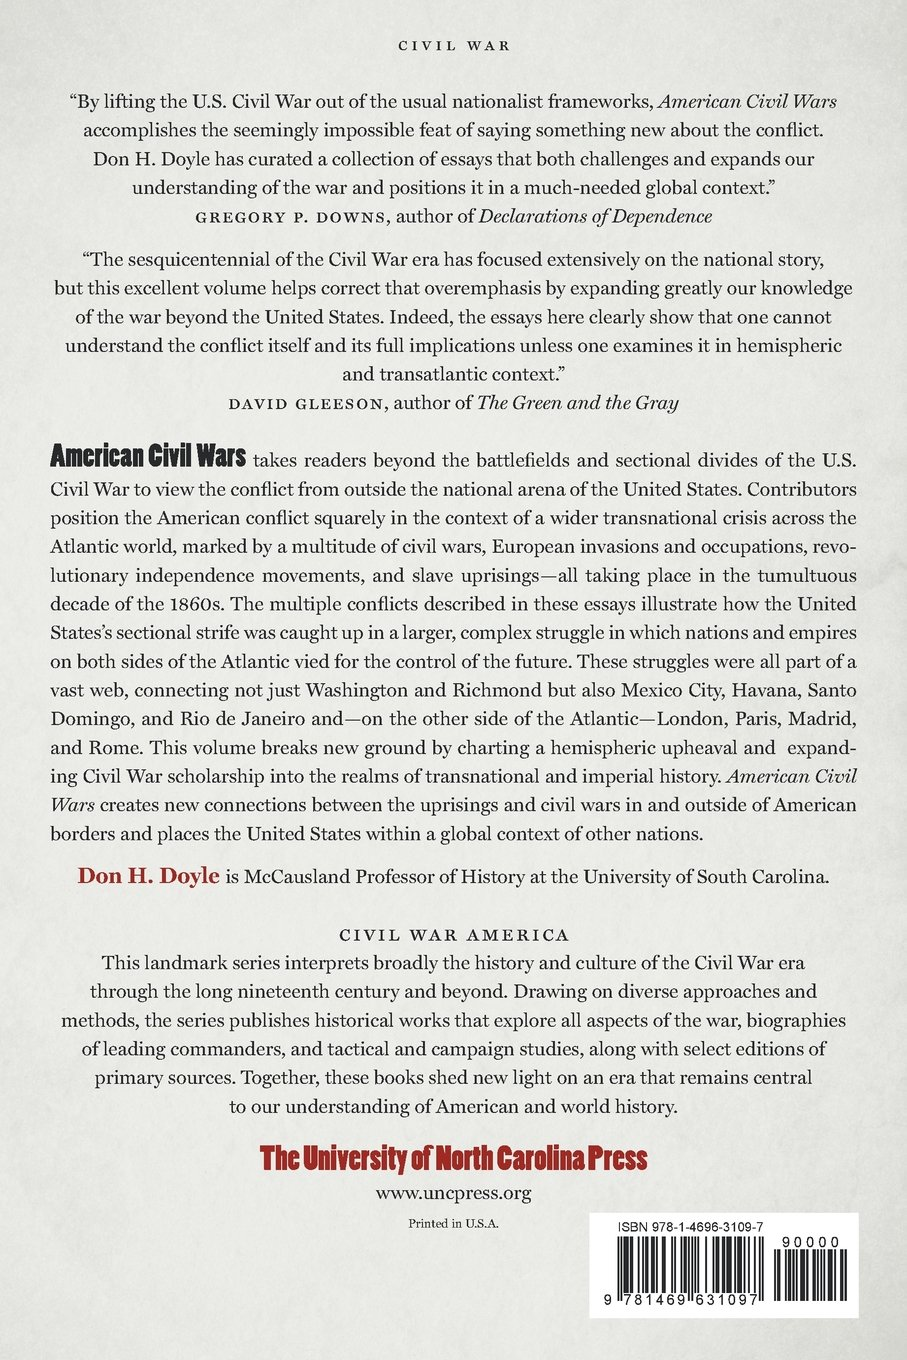 examining the civil war essay Free essay: examining the civil war examining the civil war a war that originated because the nation was divided ultimately marked the beginning of a truly.